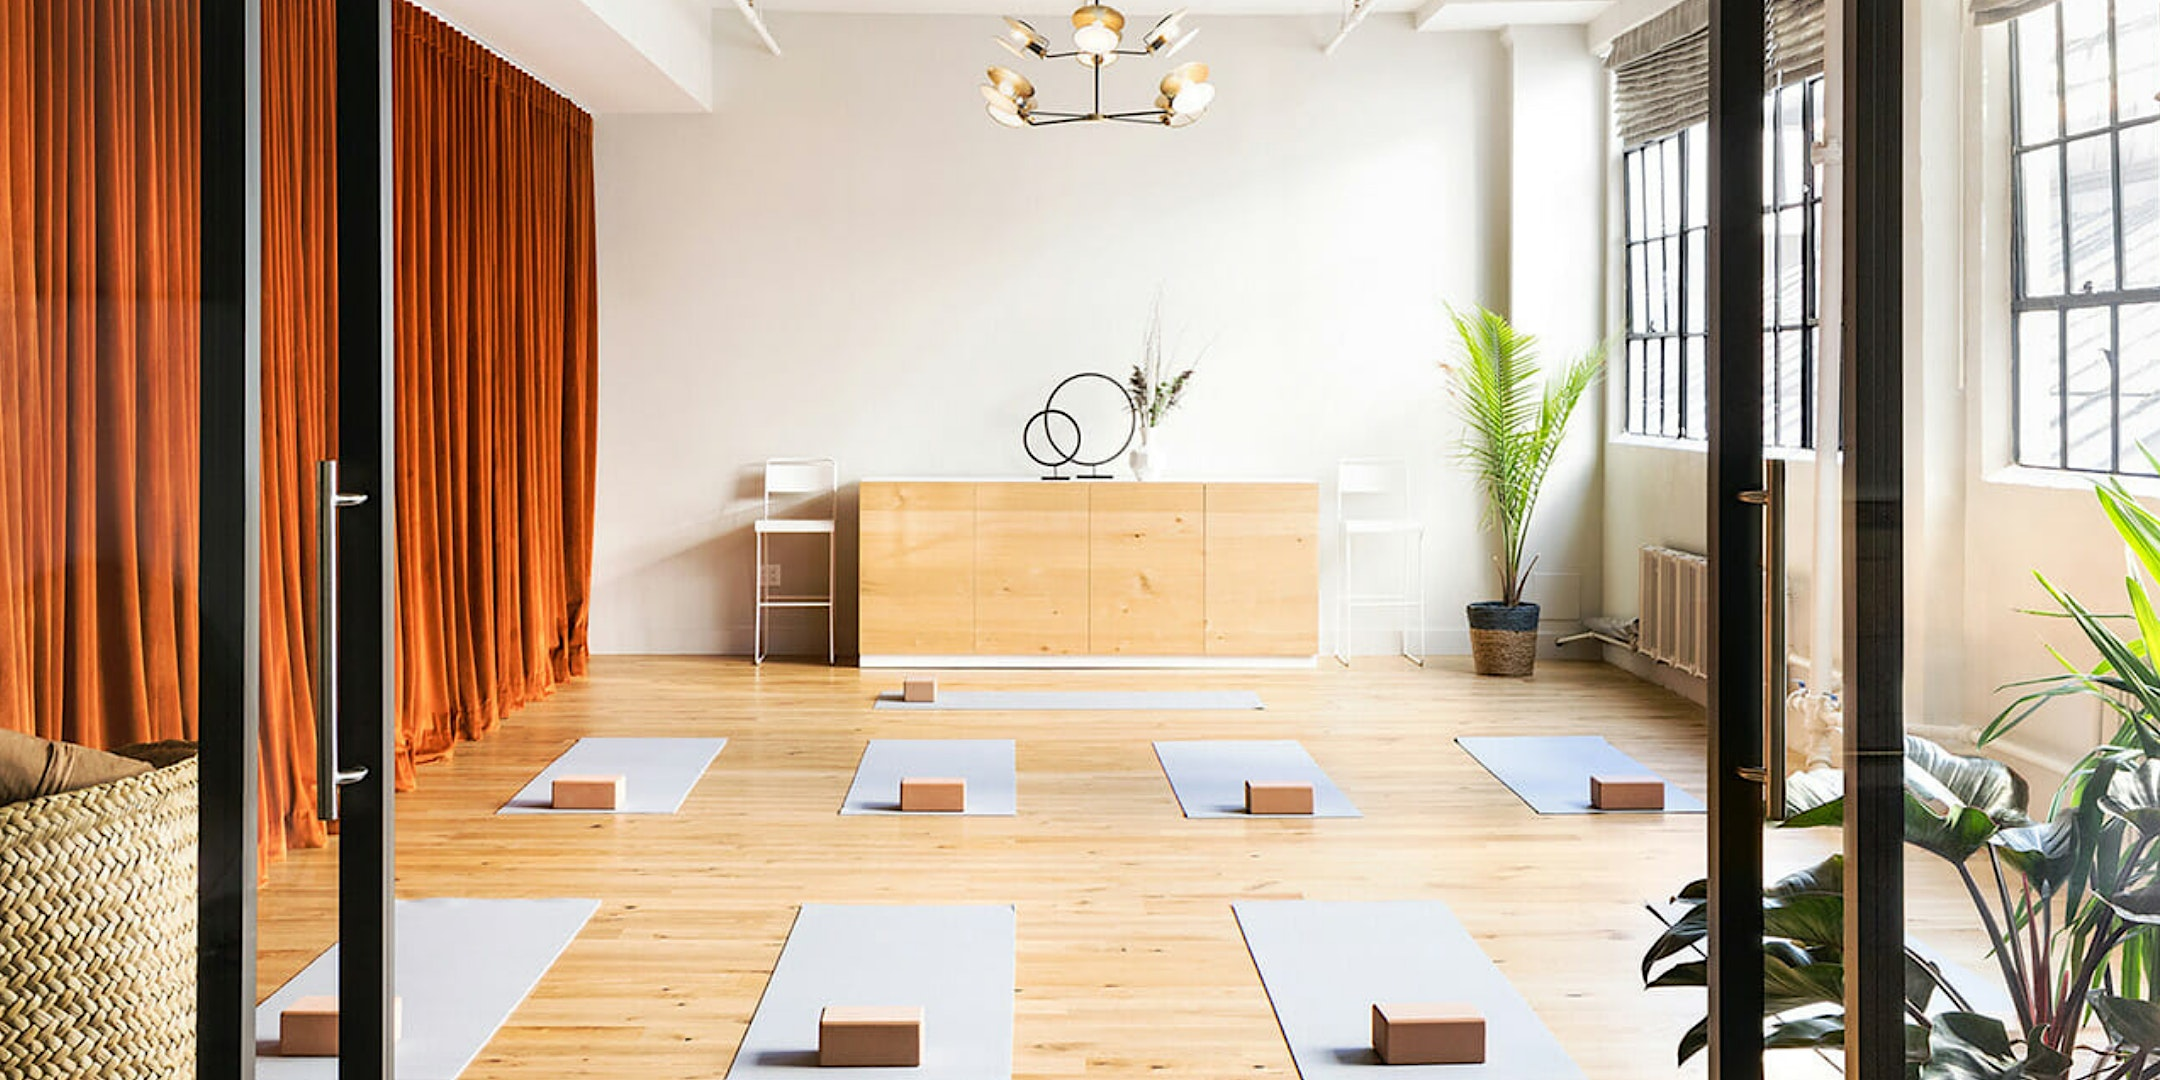 Yoga with Betsy Kase of Haven